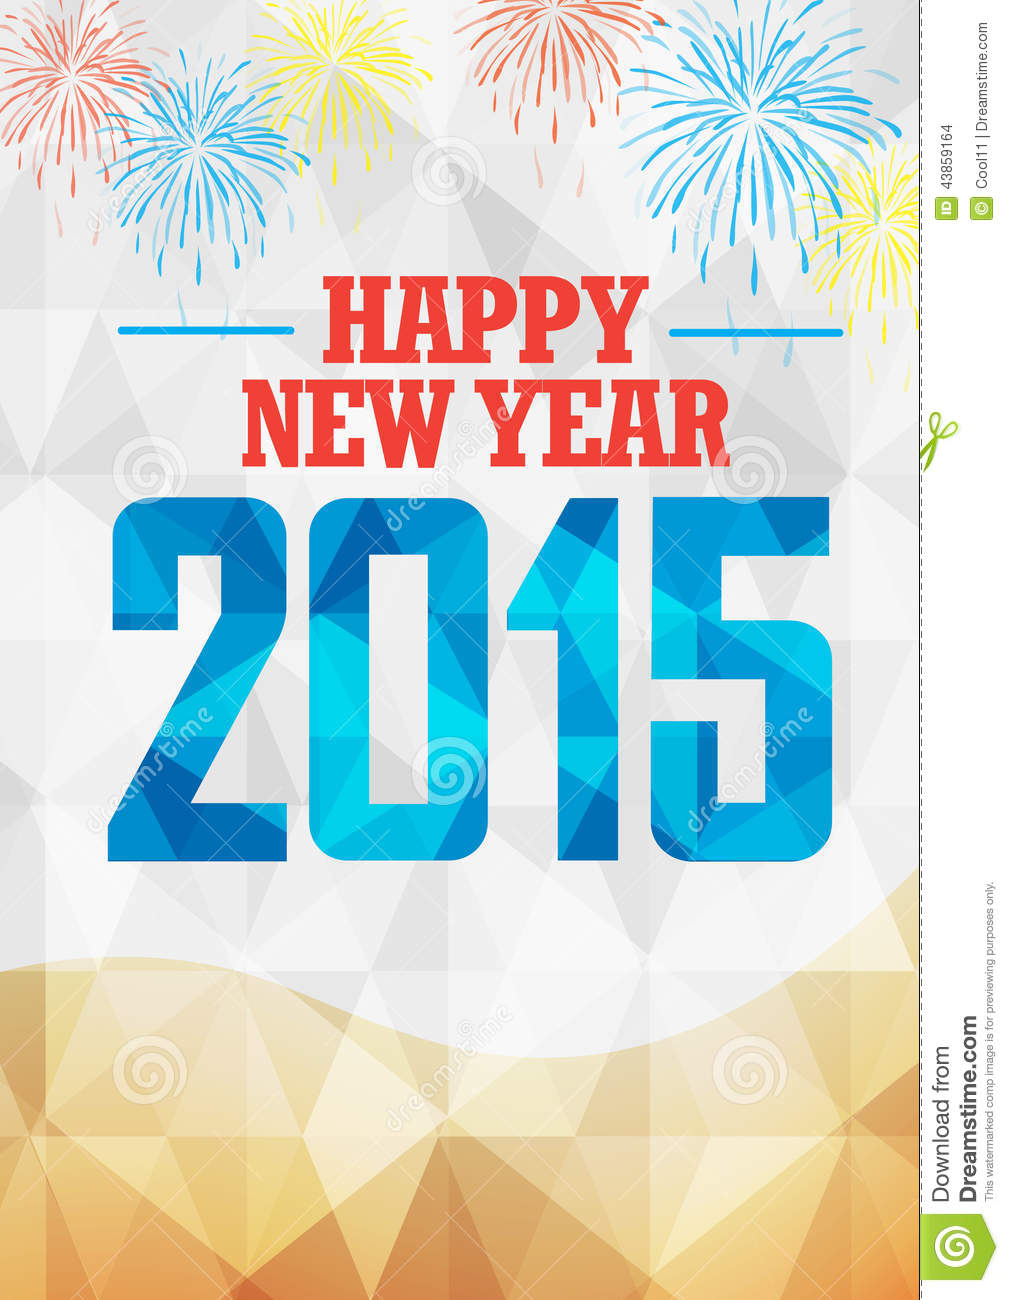 New Year 2015 celebration with fireworks in geometric background